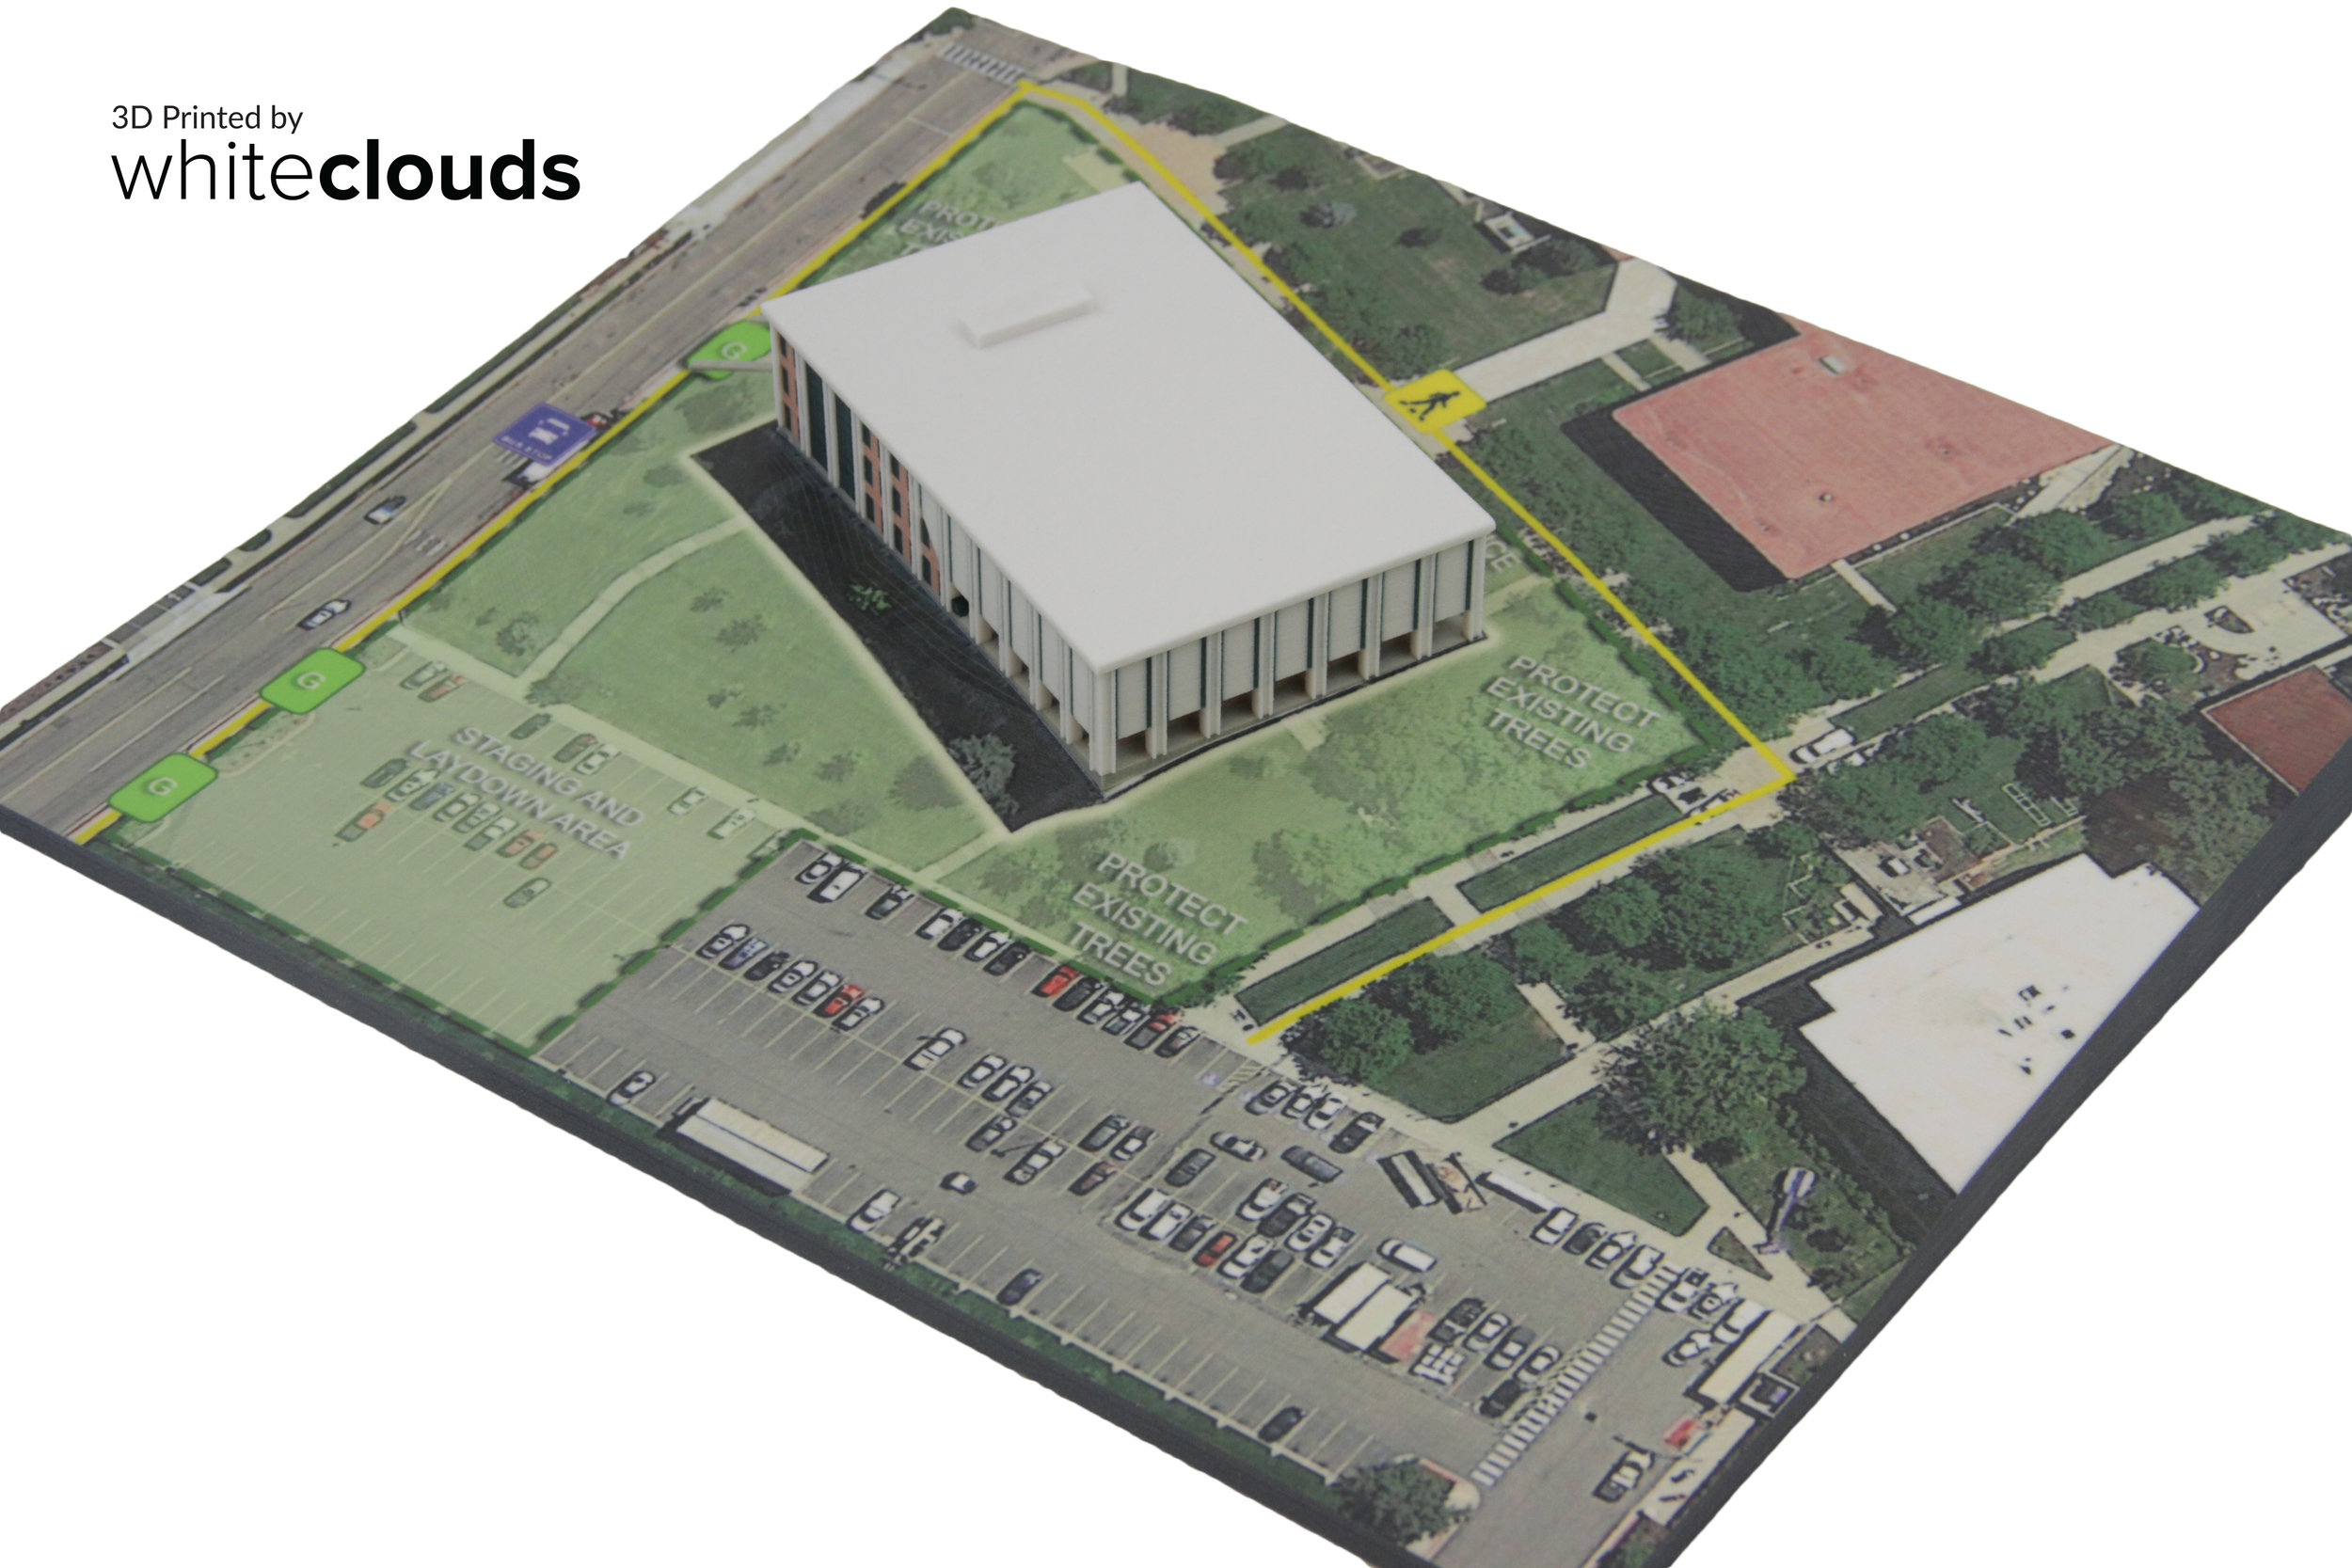 3D-Printed-WhiteCloud-Weber-State-Architecture-Big-D-Weber-State-Edited-Photos-4.JPG